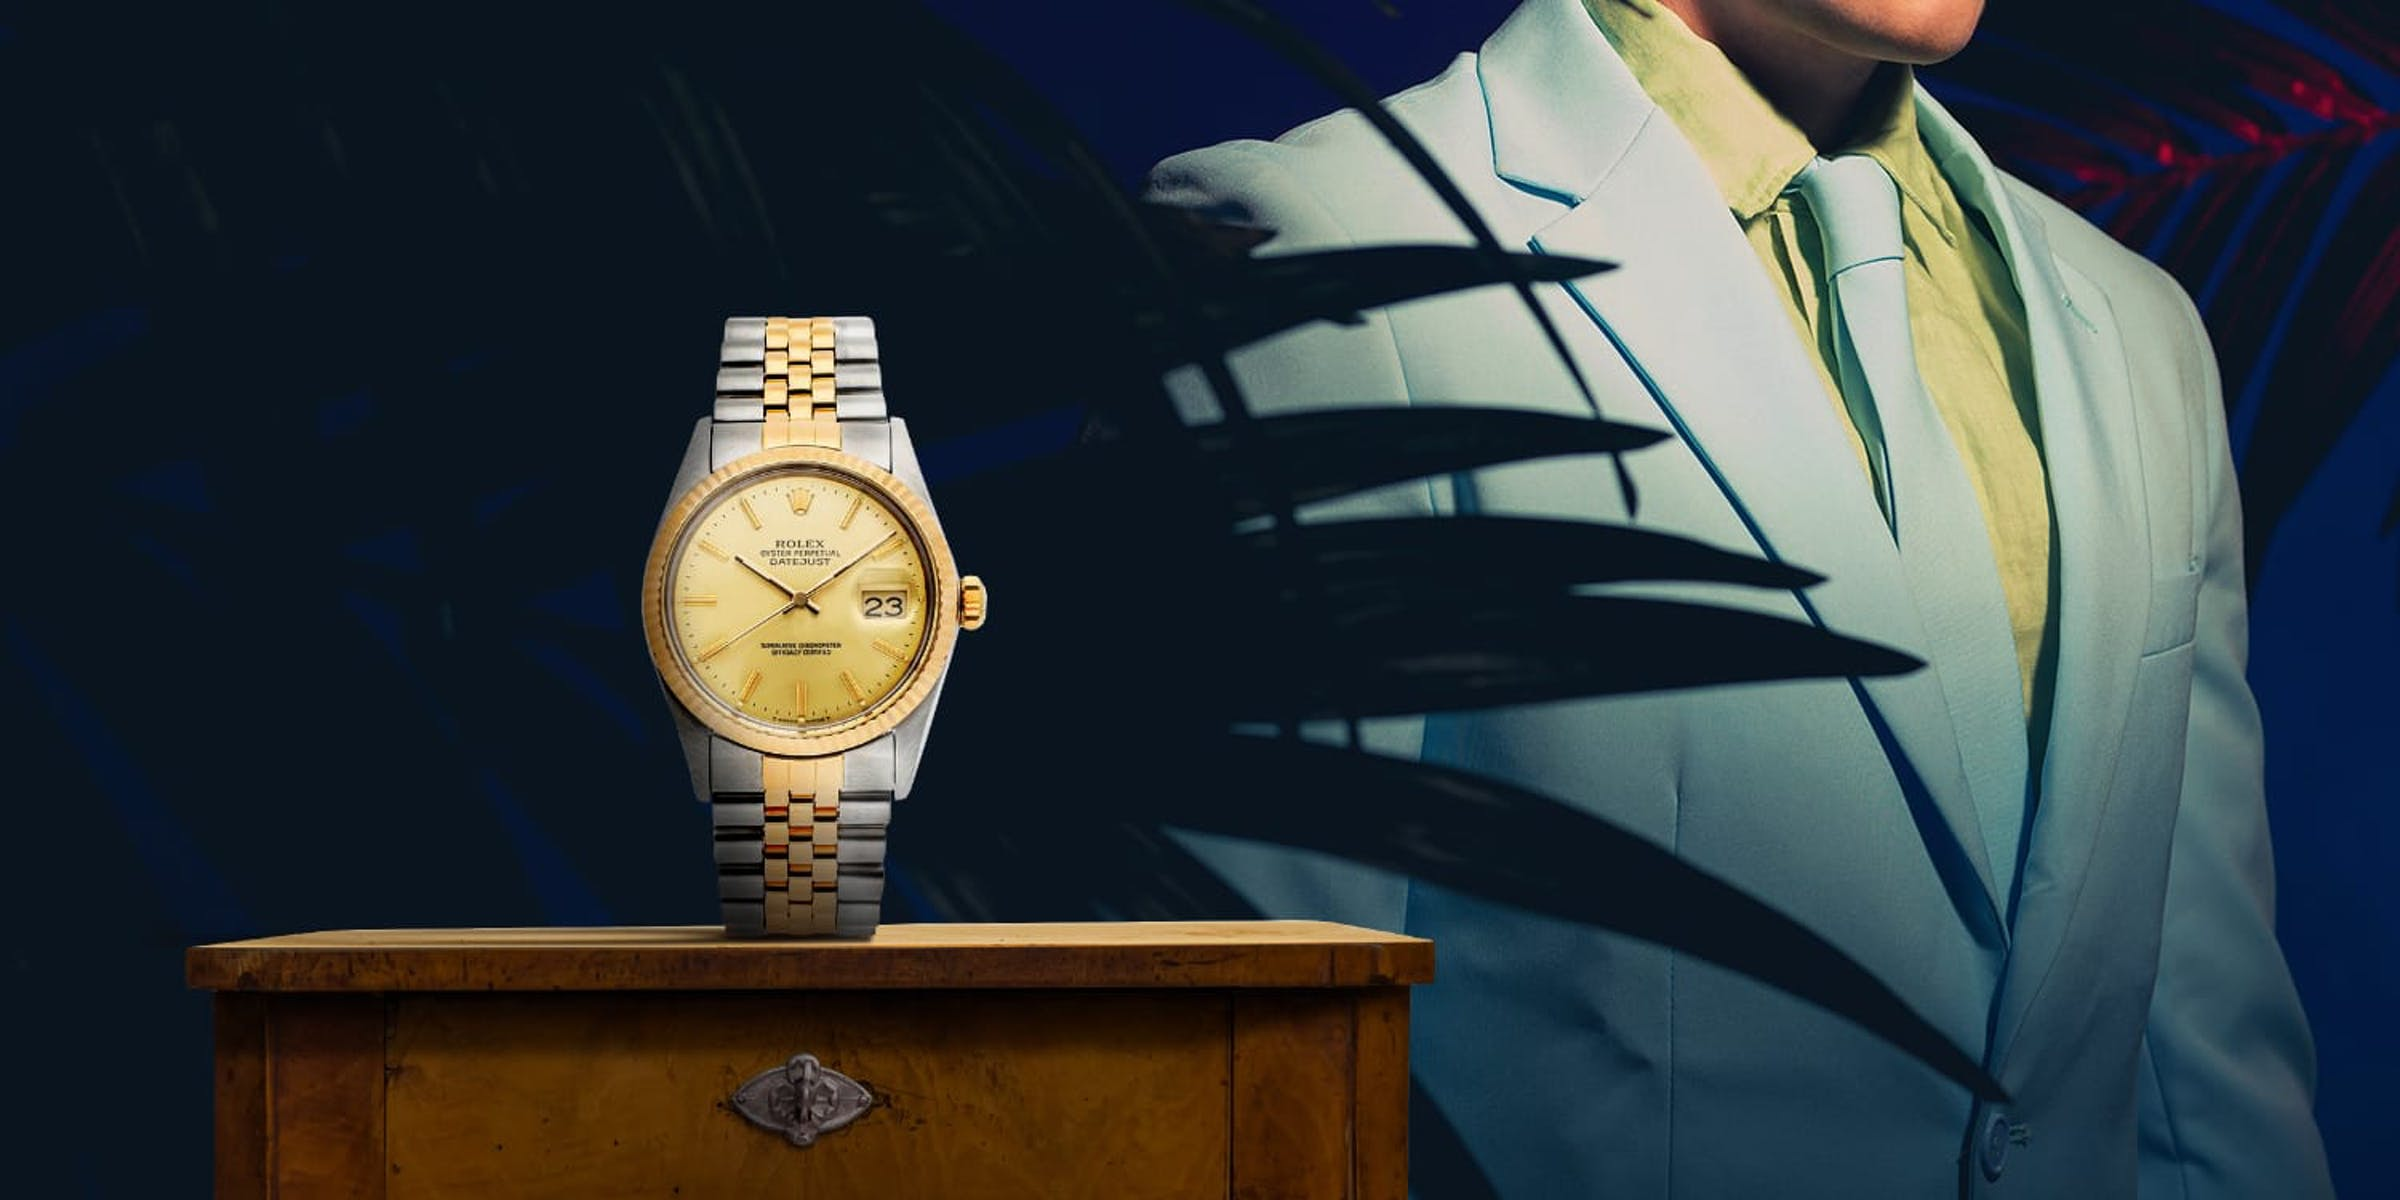 The 80s trend is back: two-tone watches. Are they too flashy or perfectly vintage?